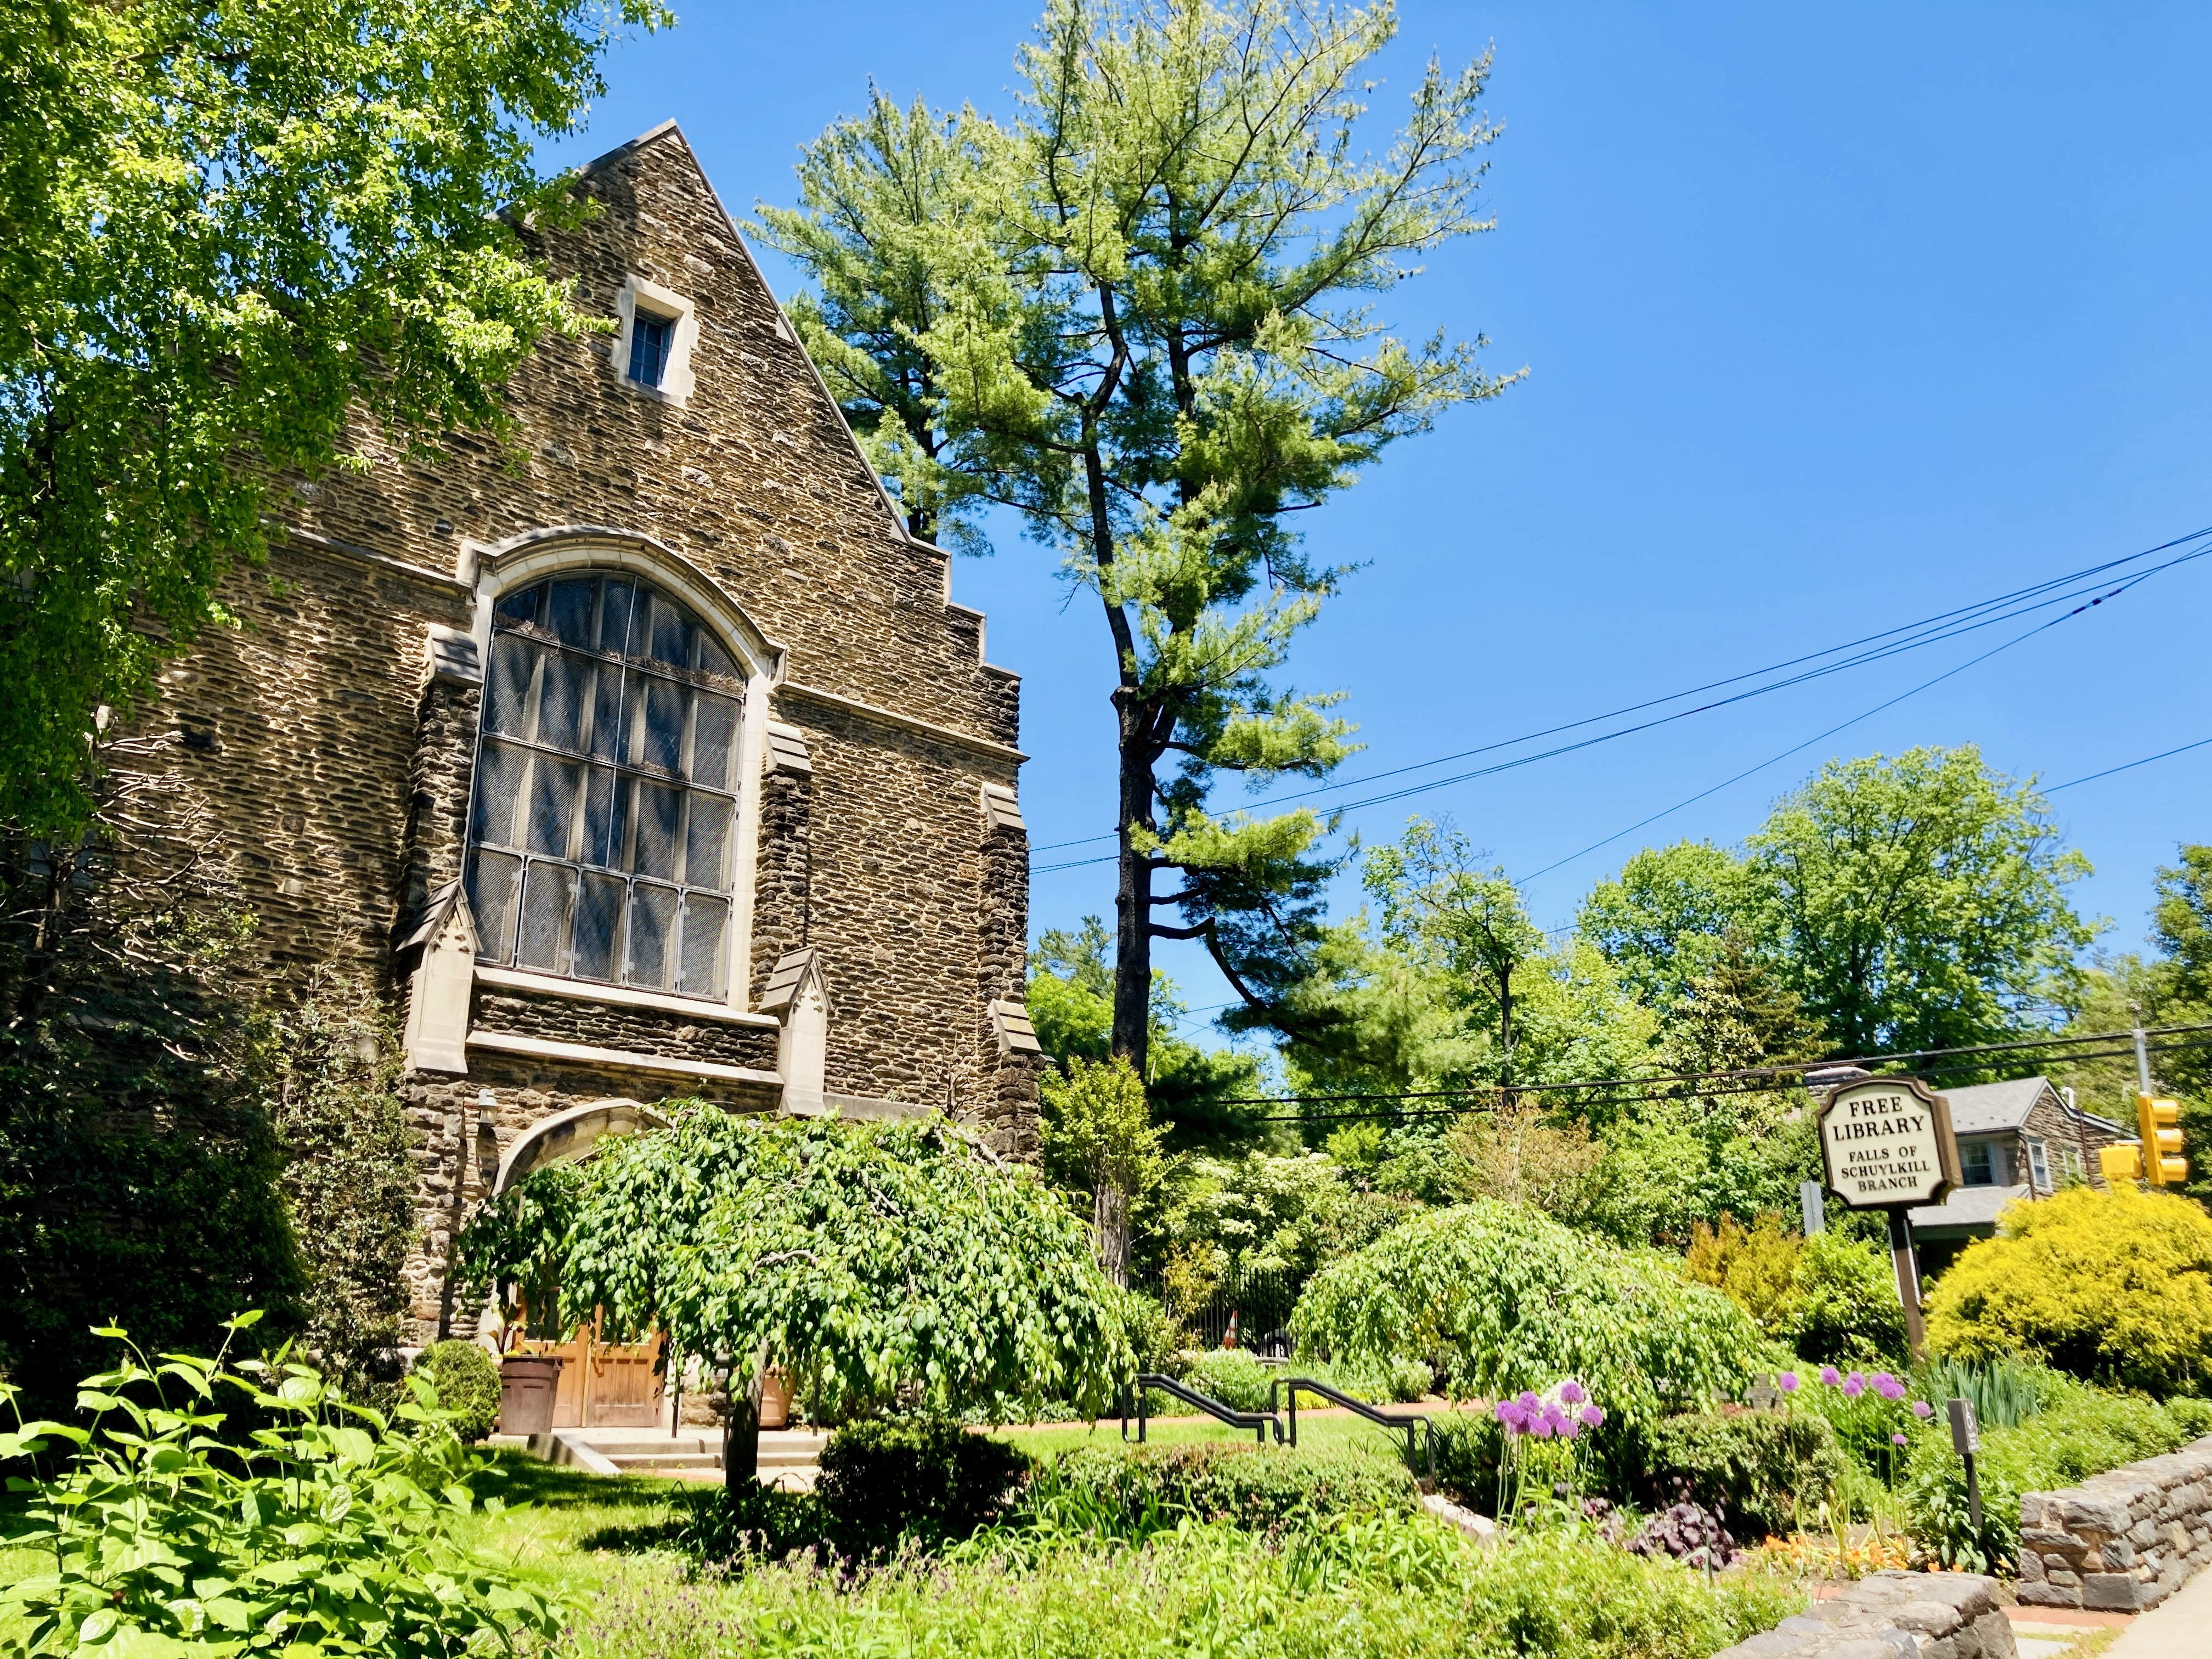 East Falls Free Library